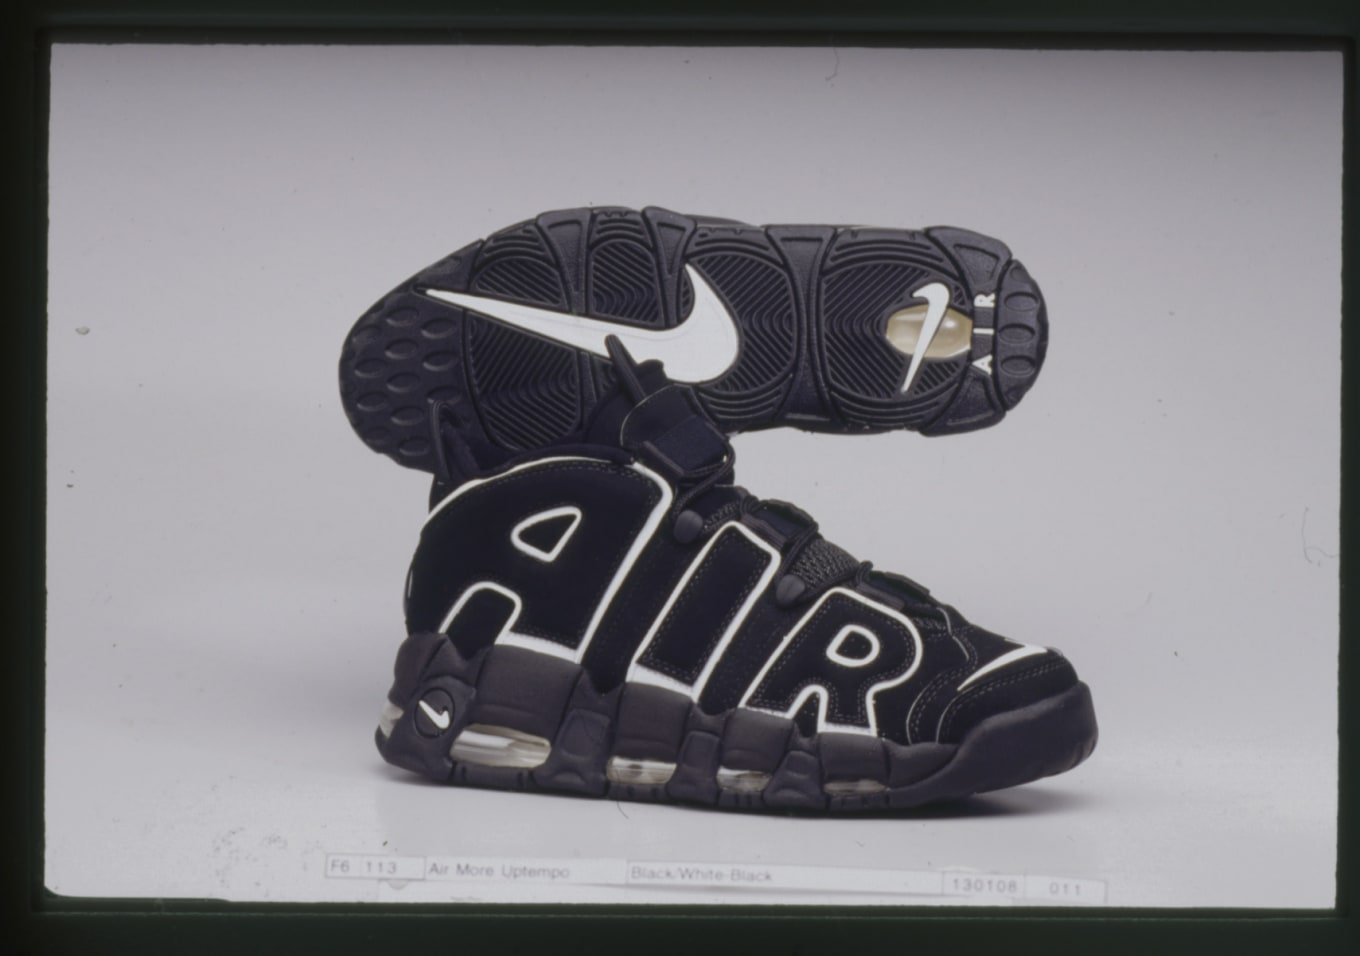 c90f9144a0e0a Scottie Pippen Says Nike Air More Uptempos Stood Out More Than Air Jordan  11s